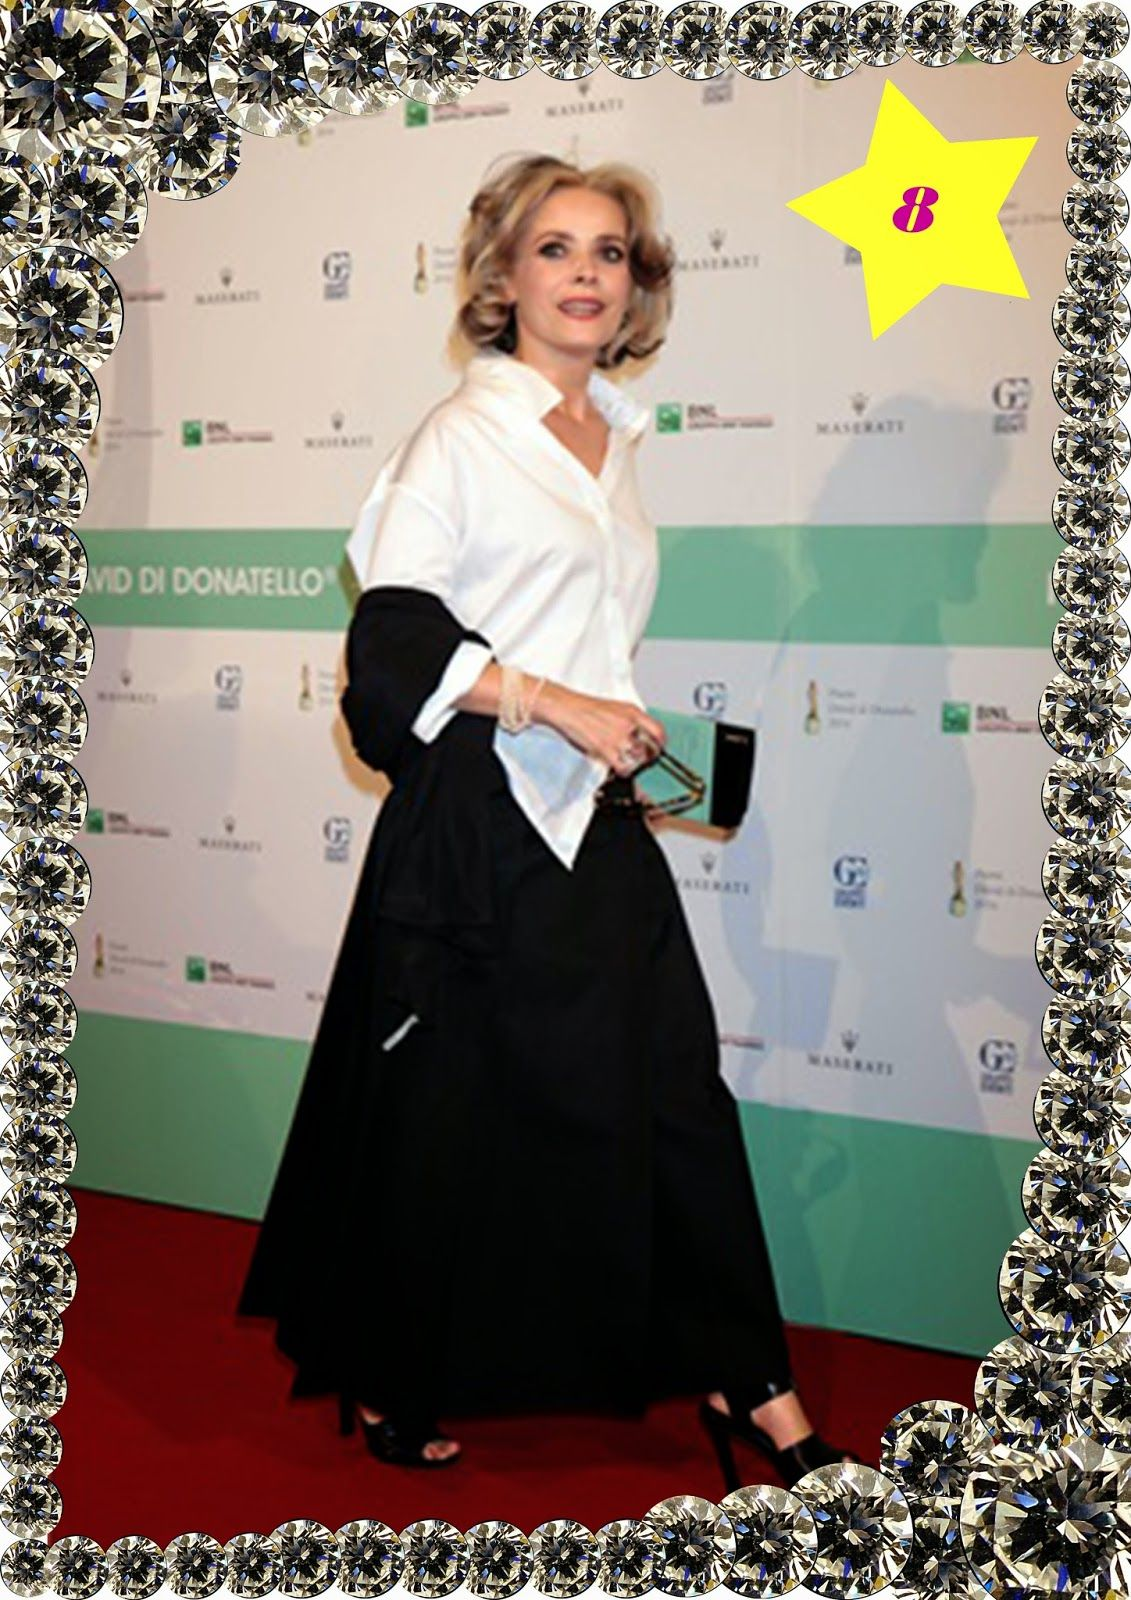 chiffon-issima #David2014, #festadelcinemaitaliano, #RedCarpet,  #star, #cinema, #moda, #fashioncool, #fashionstar,  #fashionvictim